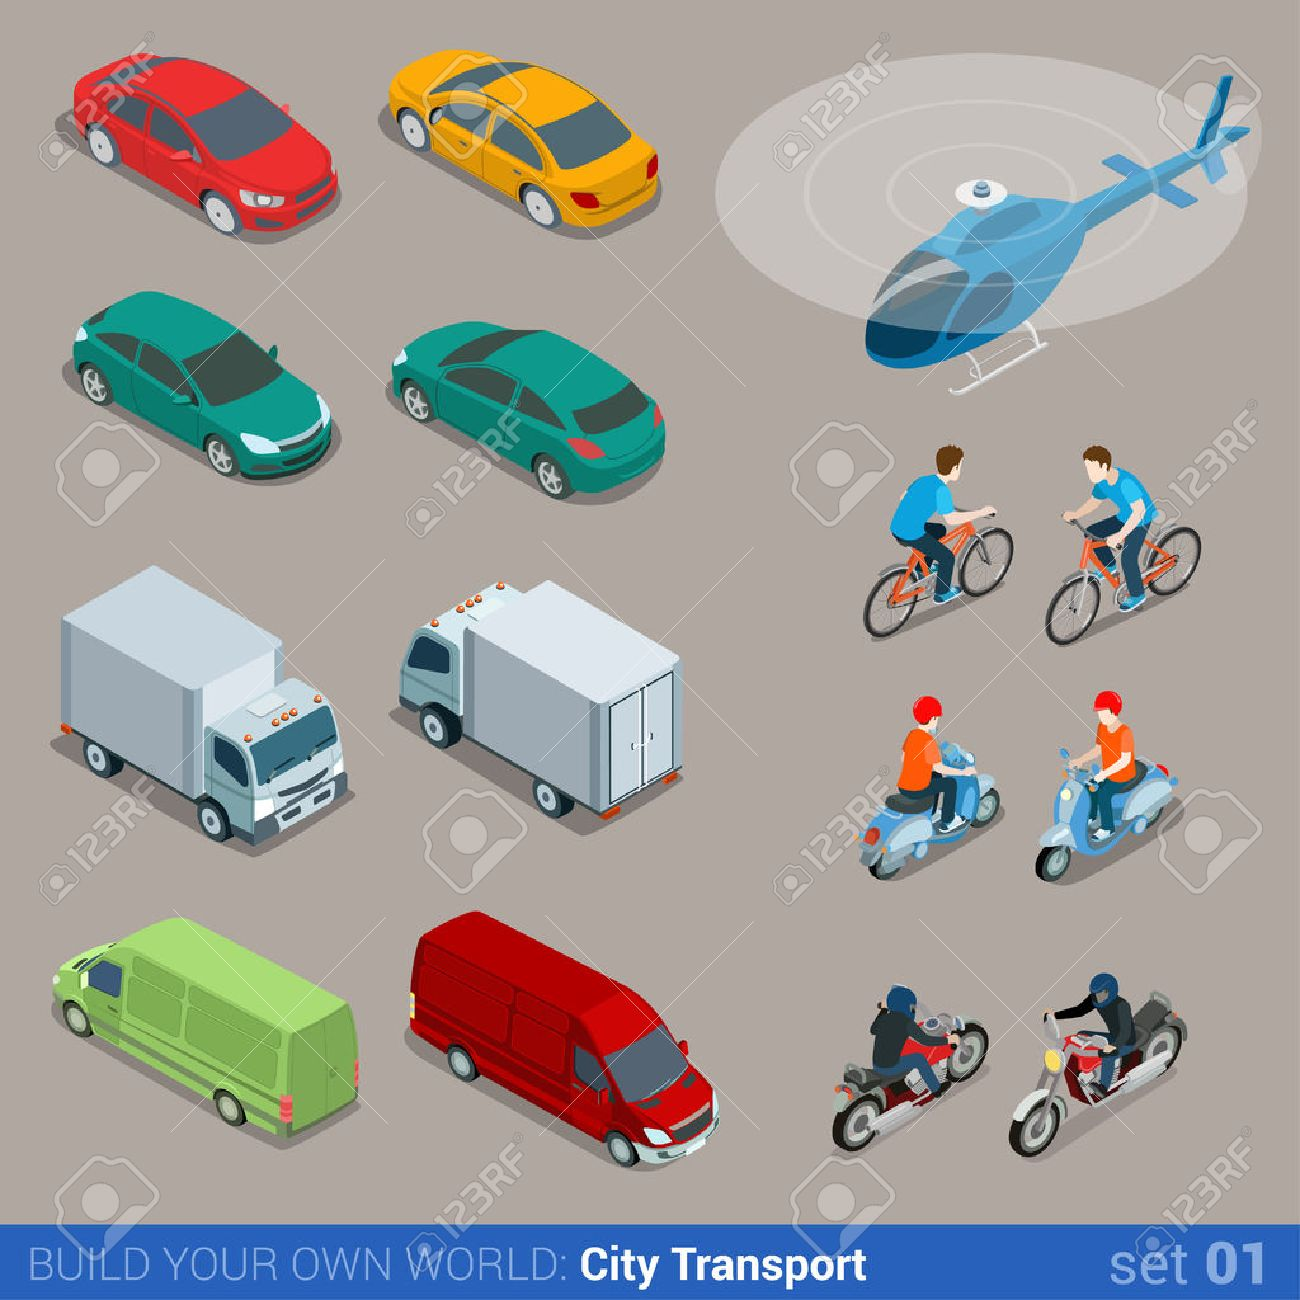 Flat 3d isometric high quality city transport icon set. Car van bus helicopter bicycle scooter motorbike and riders. Build your own world web infographic collection. Stock Vector - 48927578